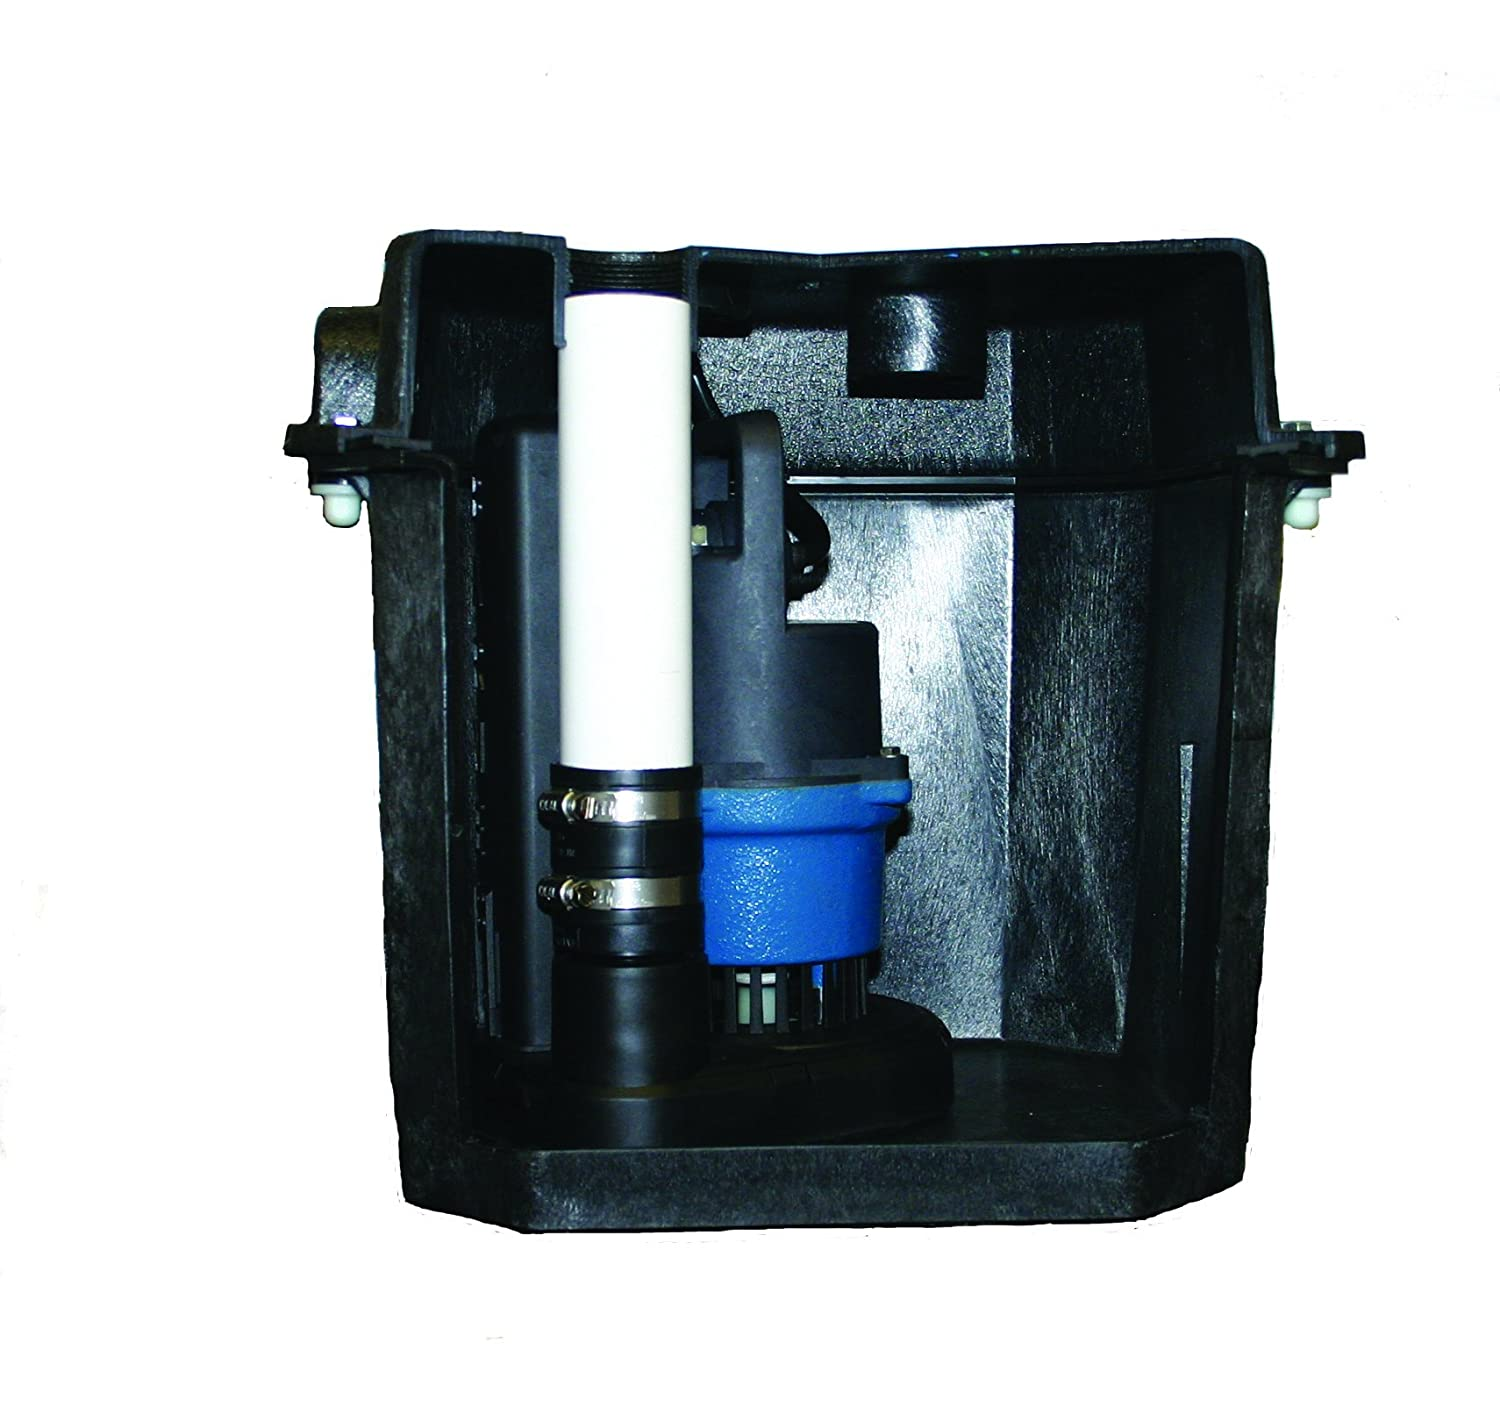 "Barnes 131411 Model SU33LT Preassembled Laundry Tray Sump Pump System with SU33 Pump, 1/3 hp, 120V, 42 GPM, 1-1/2"" NPT Discharge"